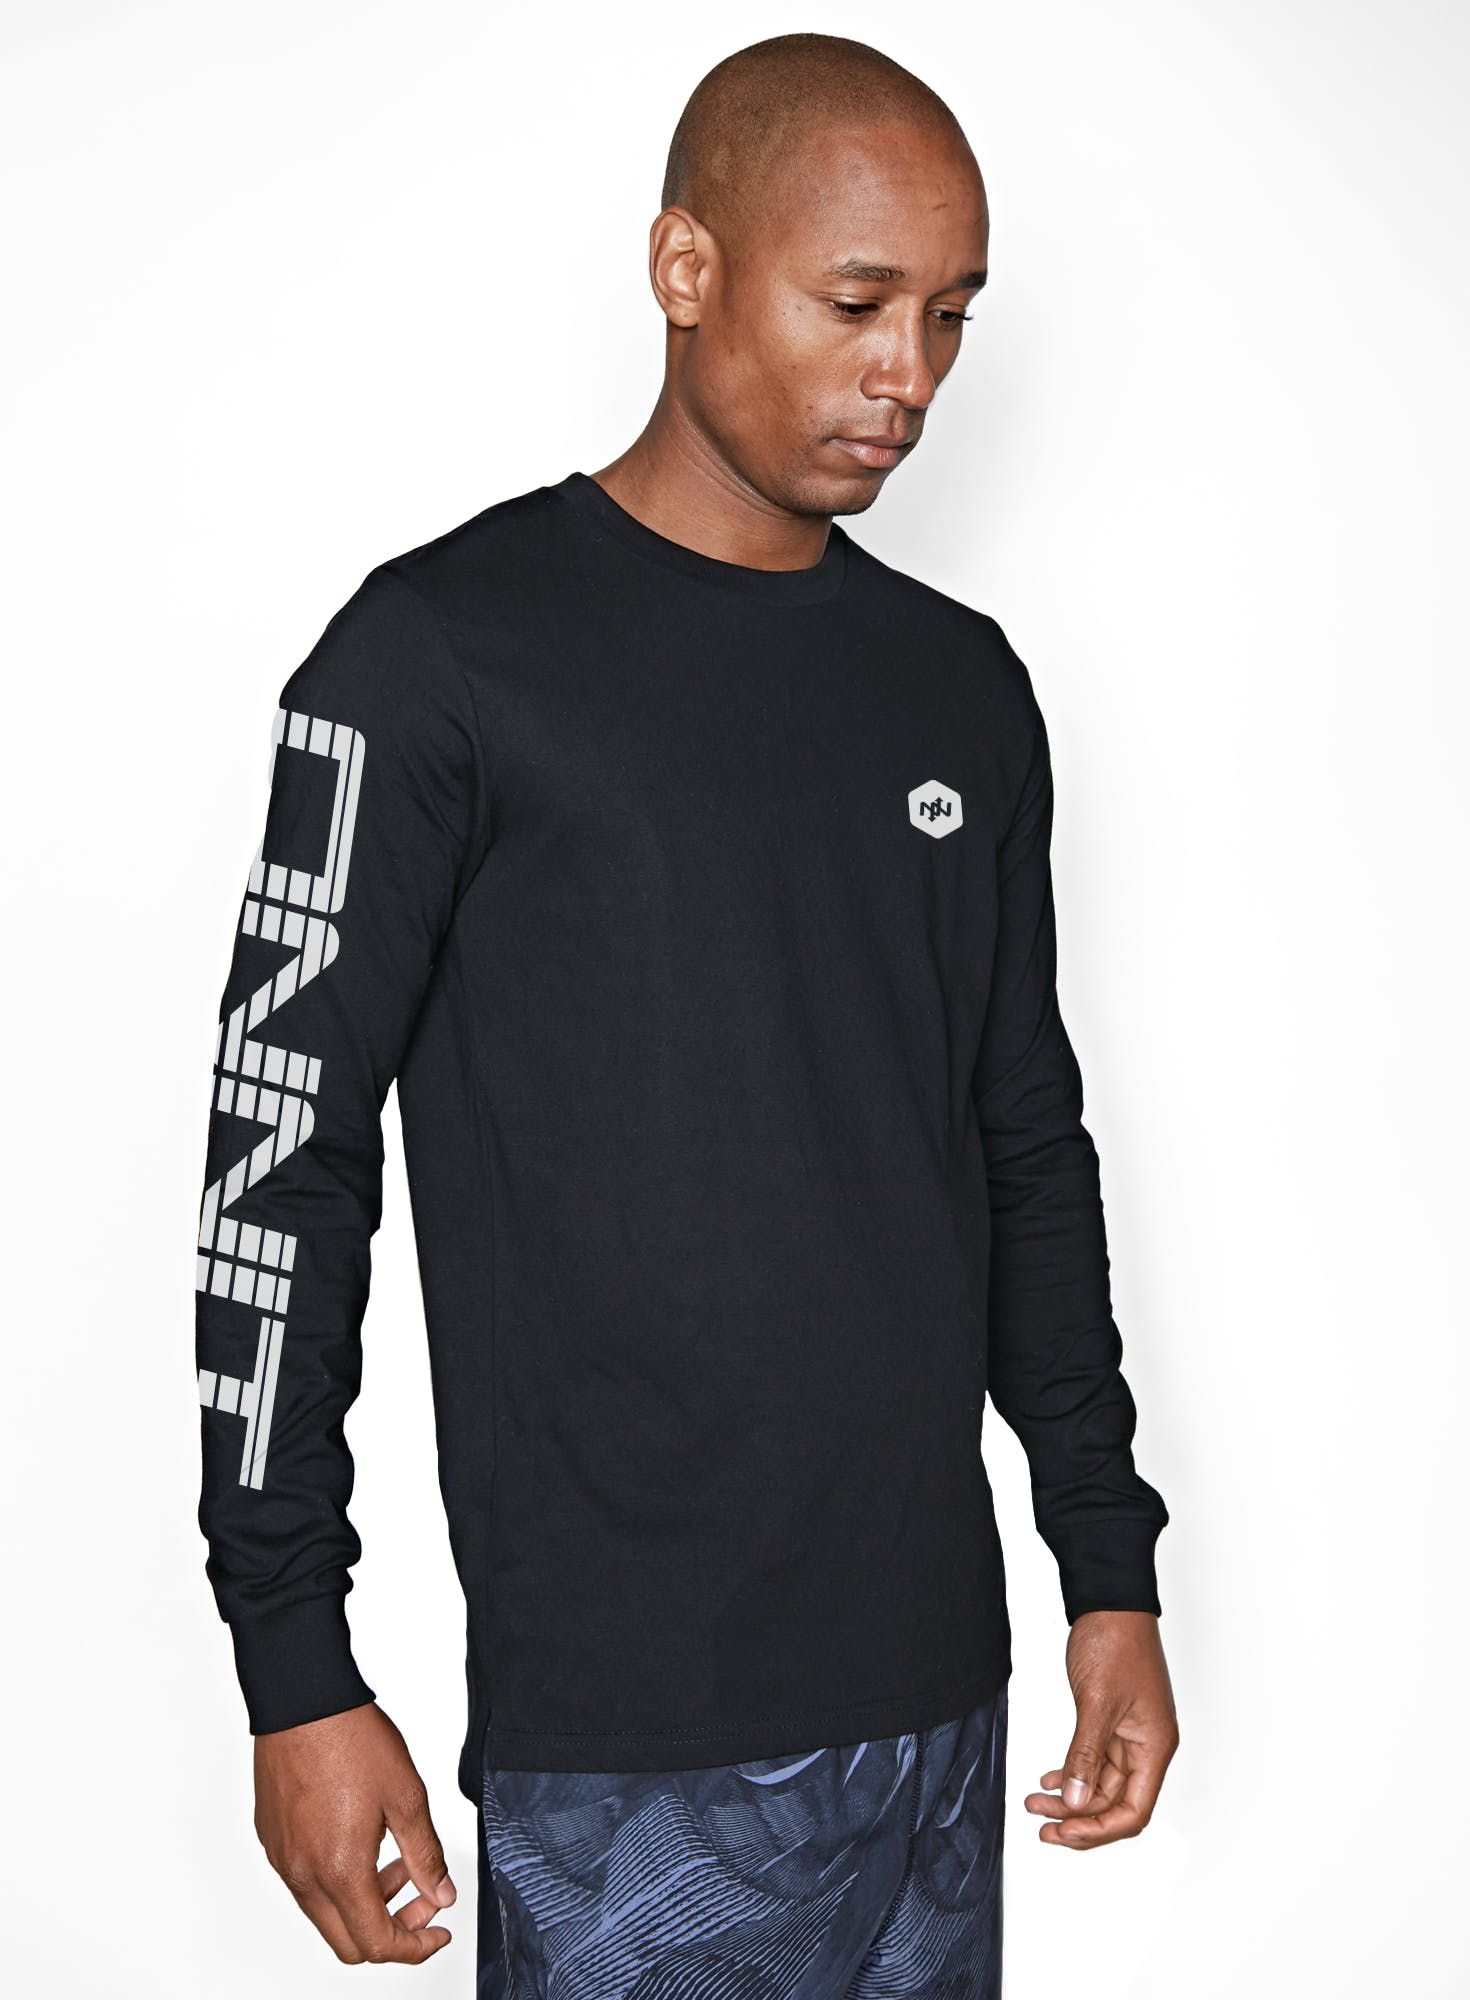 Onnit Linear Long Sleeve T-Shirt